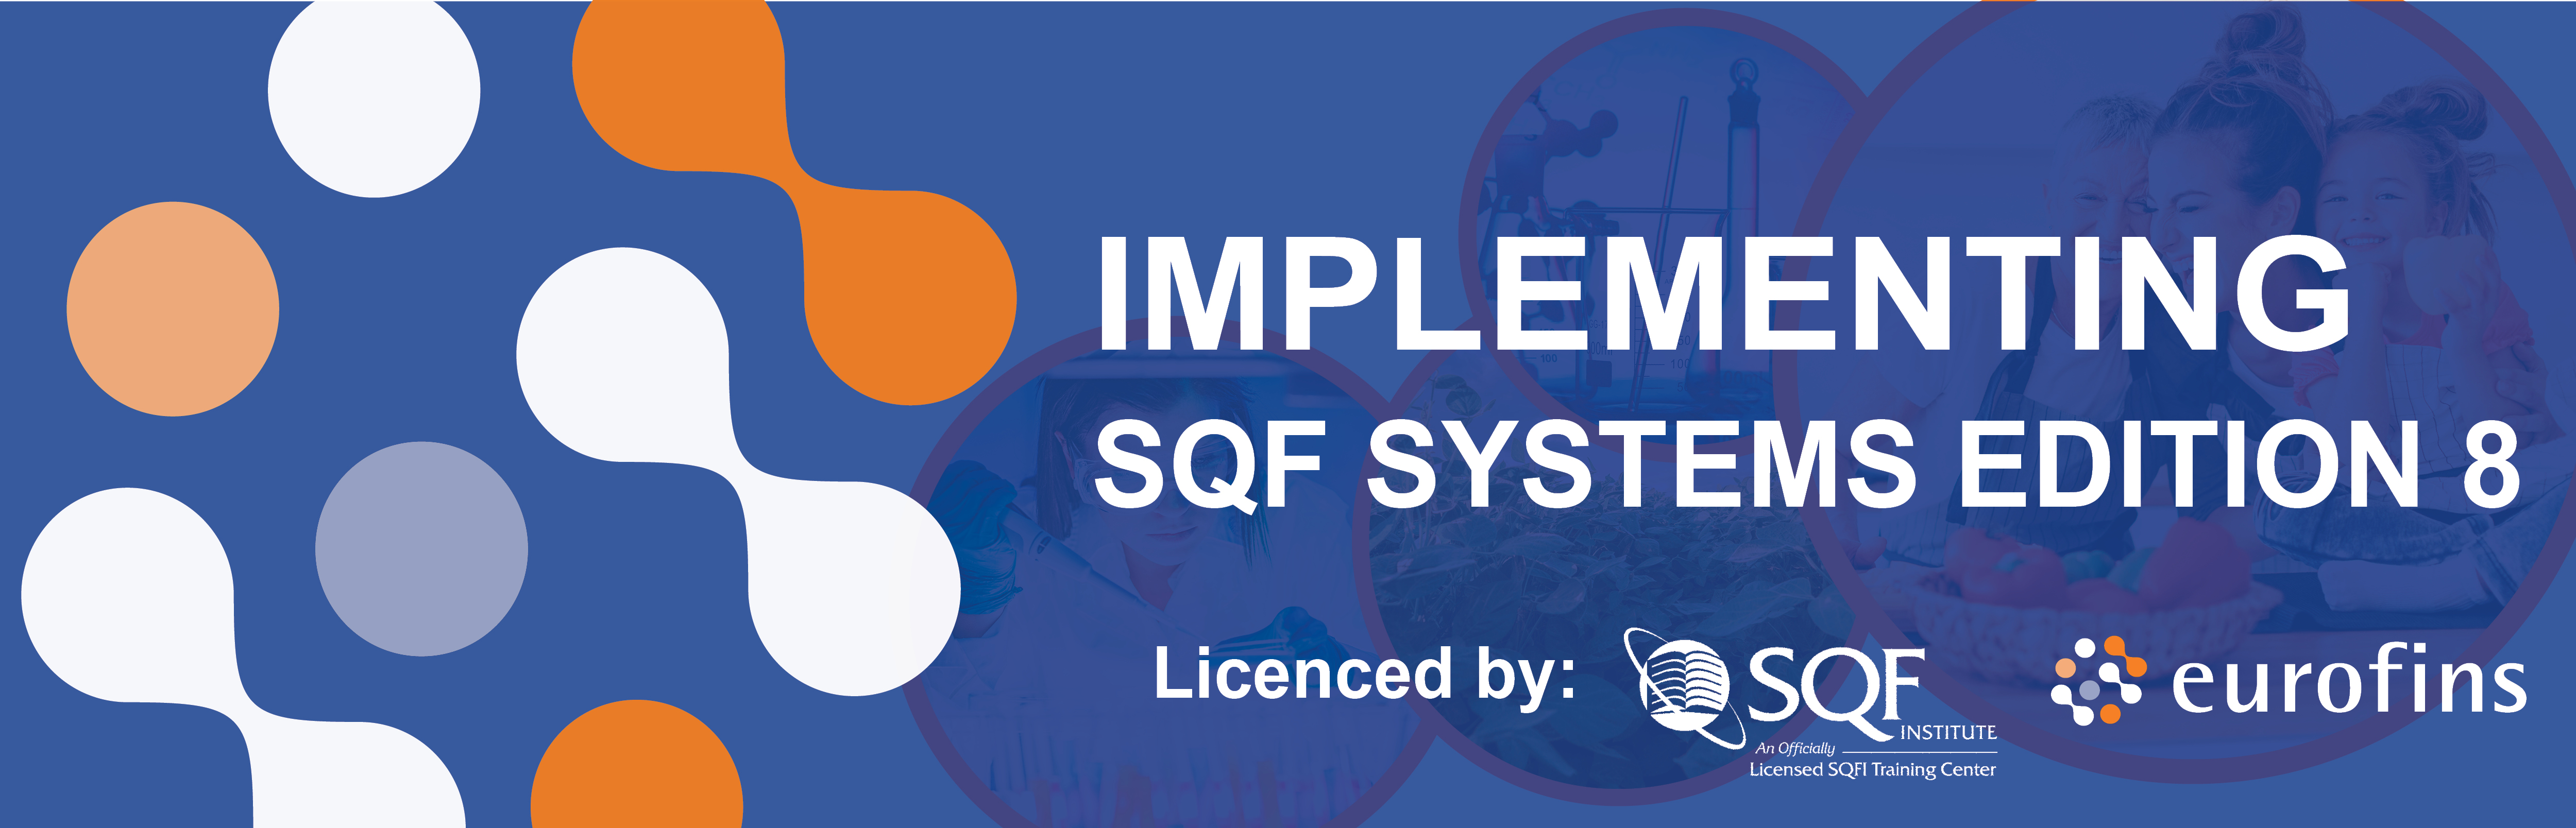 Implementing SQF Systems-Manufacturing Edition 8